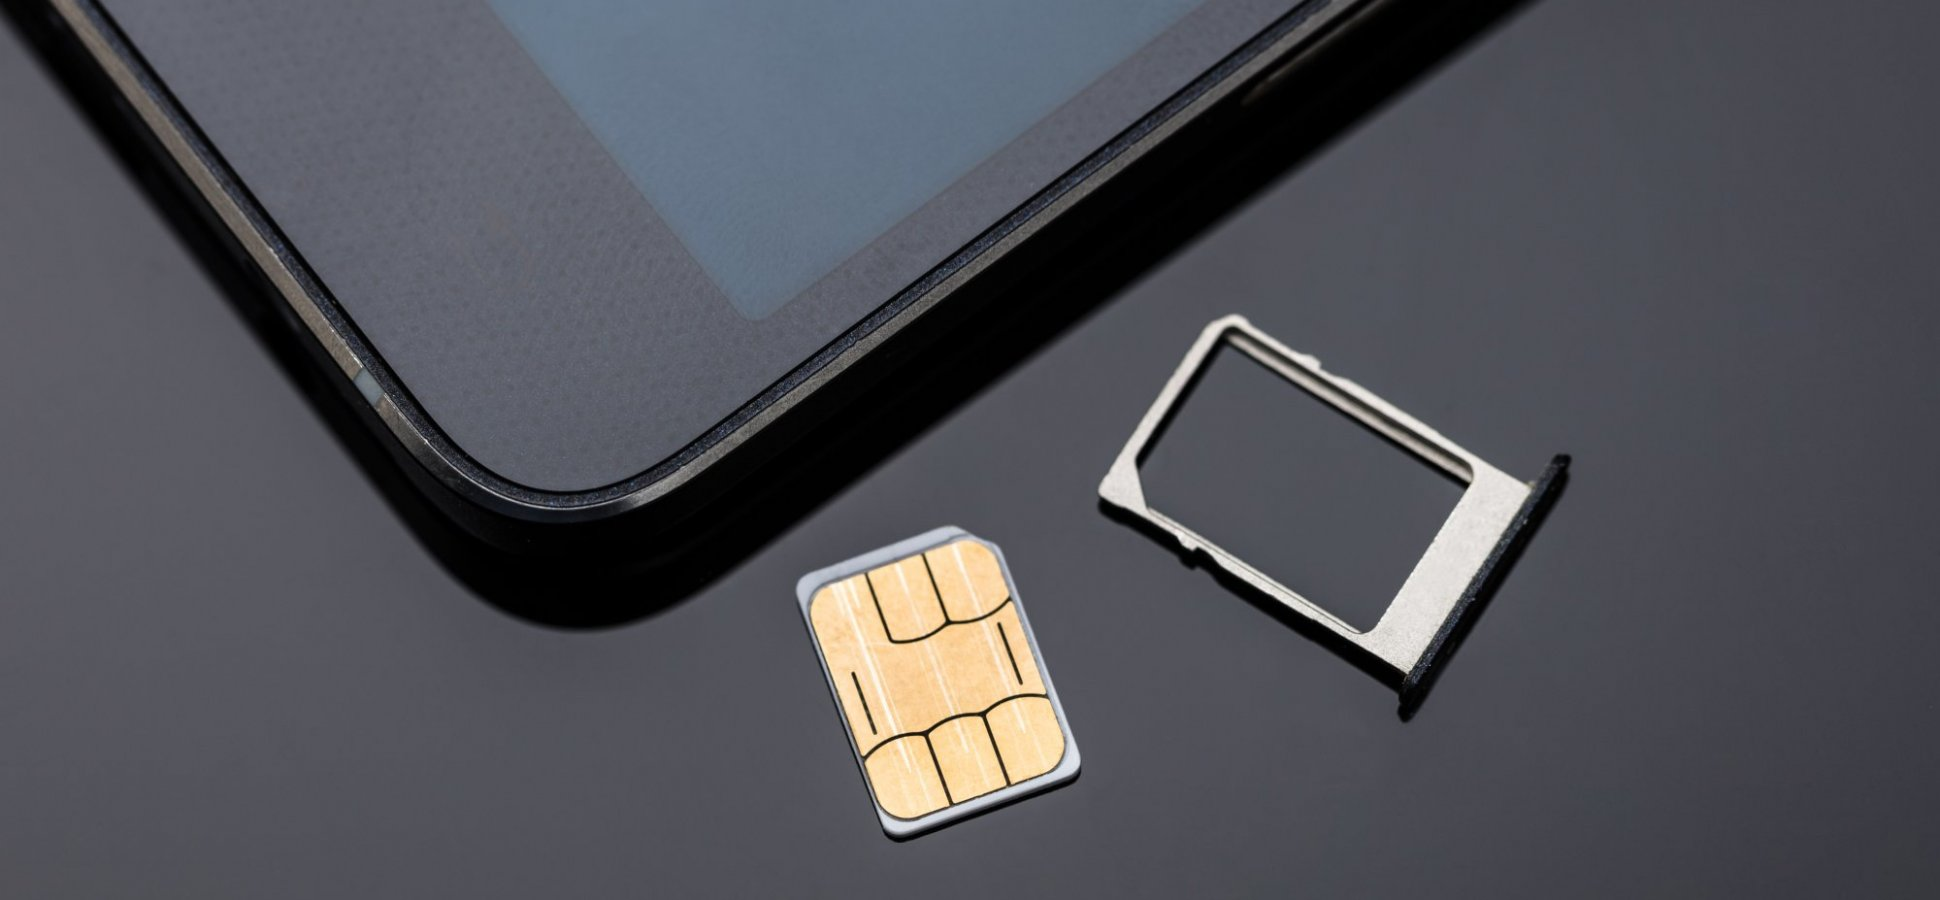 SIM Swapping Is One of the Biggest Cybersecurity Threats You Face, and Almost No One Is Trying to Fix It. Here's Why It Matters